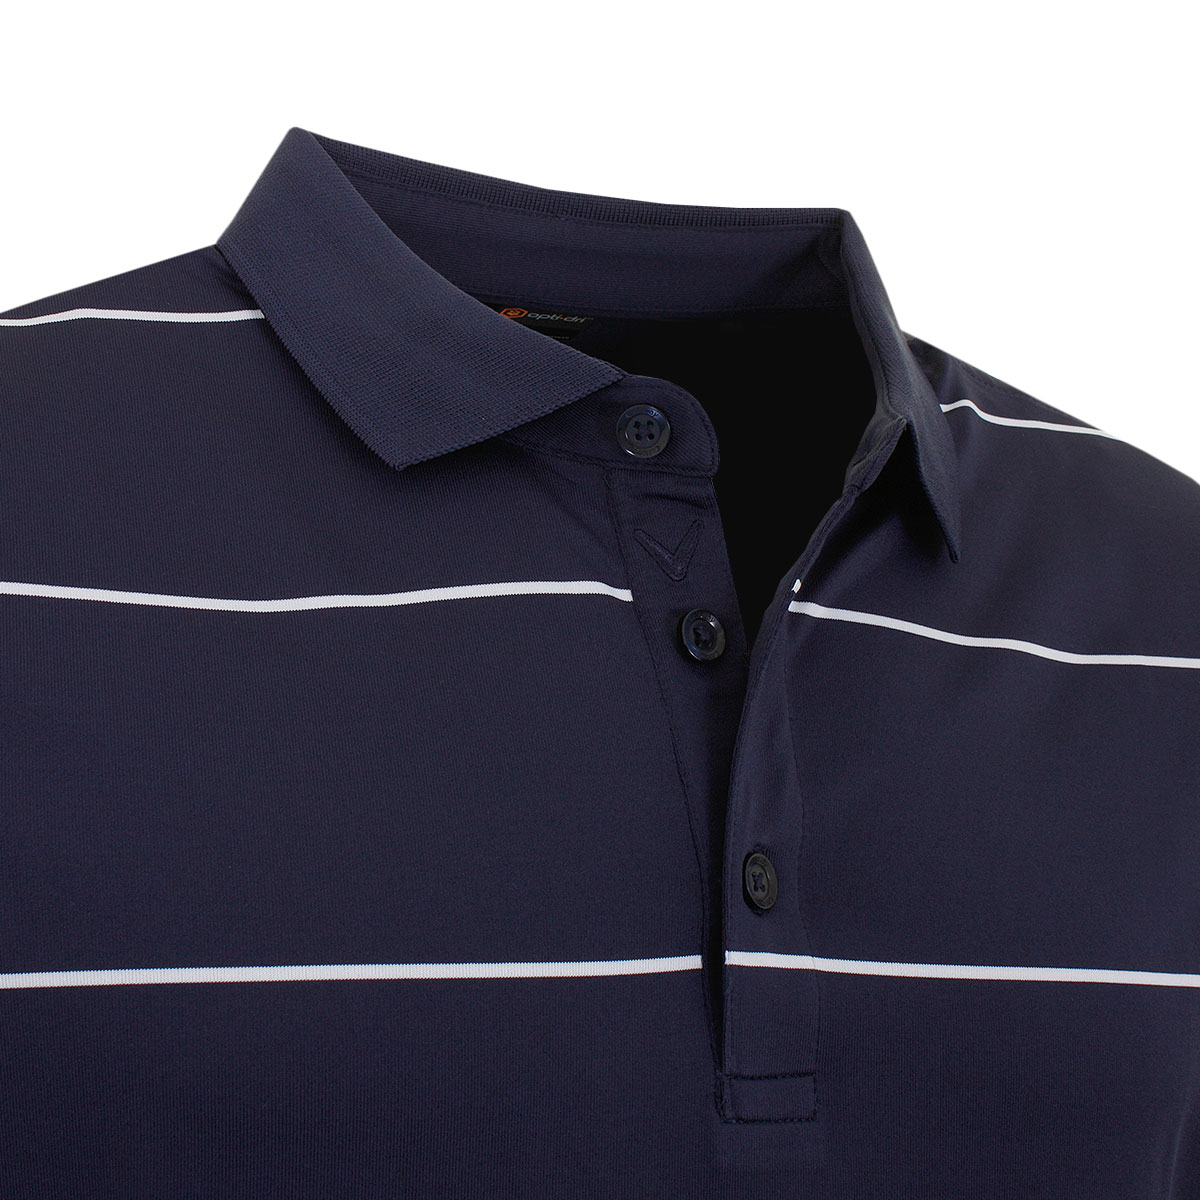 Callaway-Golf-Mens-Chev-Auto-Stripe-Polo-Shirt-Opti-Dri-Short-Sleeve-53-OFF-RRP thumbnail 18